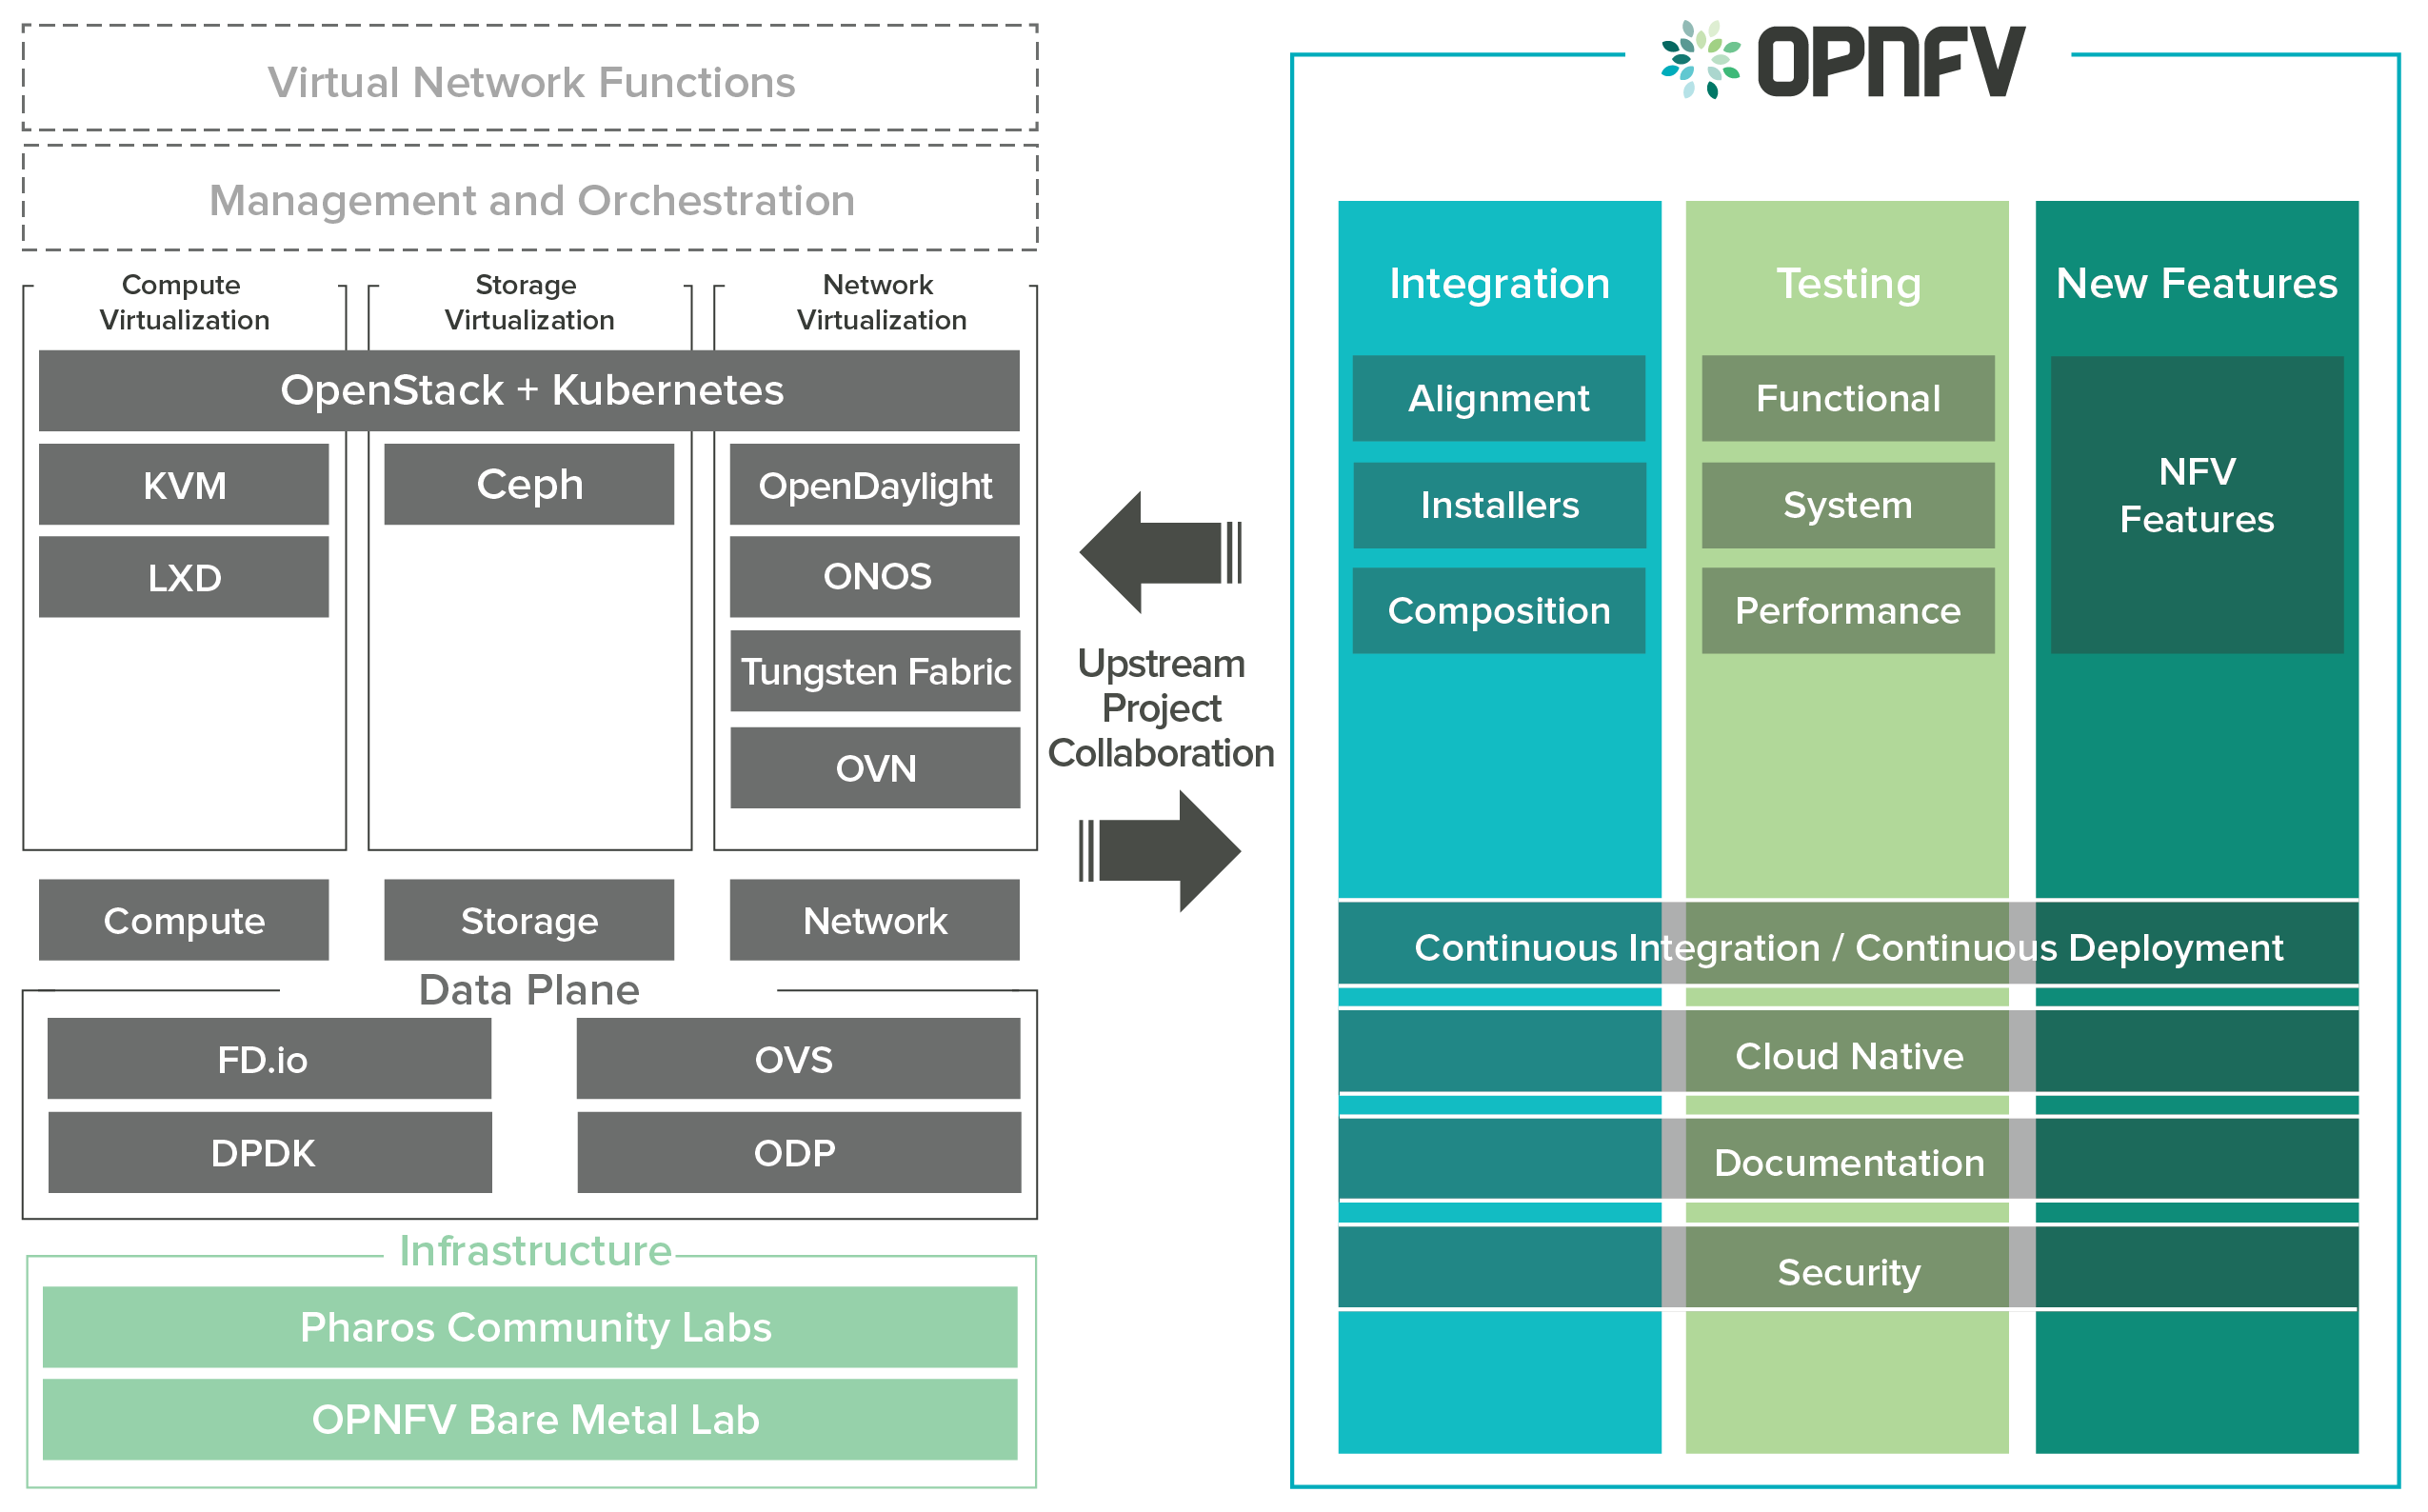 Fraser Documentation Visualization Modeling Sdk Circuit Diagrams Extensive Dsl Overview Infographic Of The Opnfv Platform And Projects